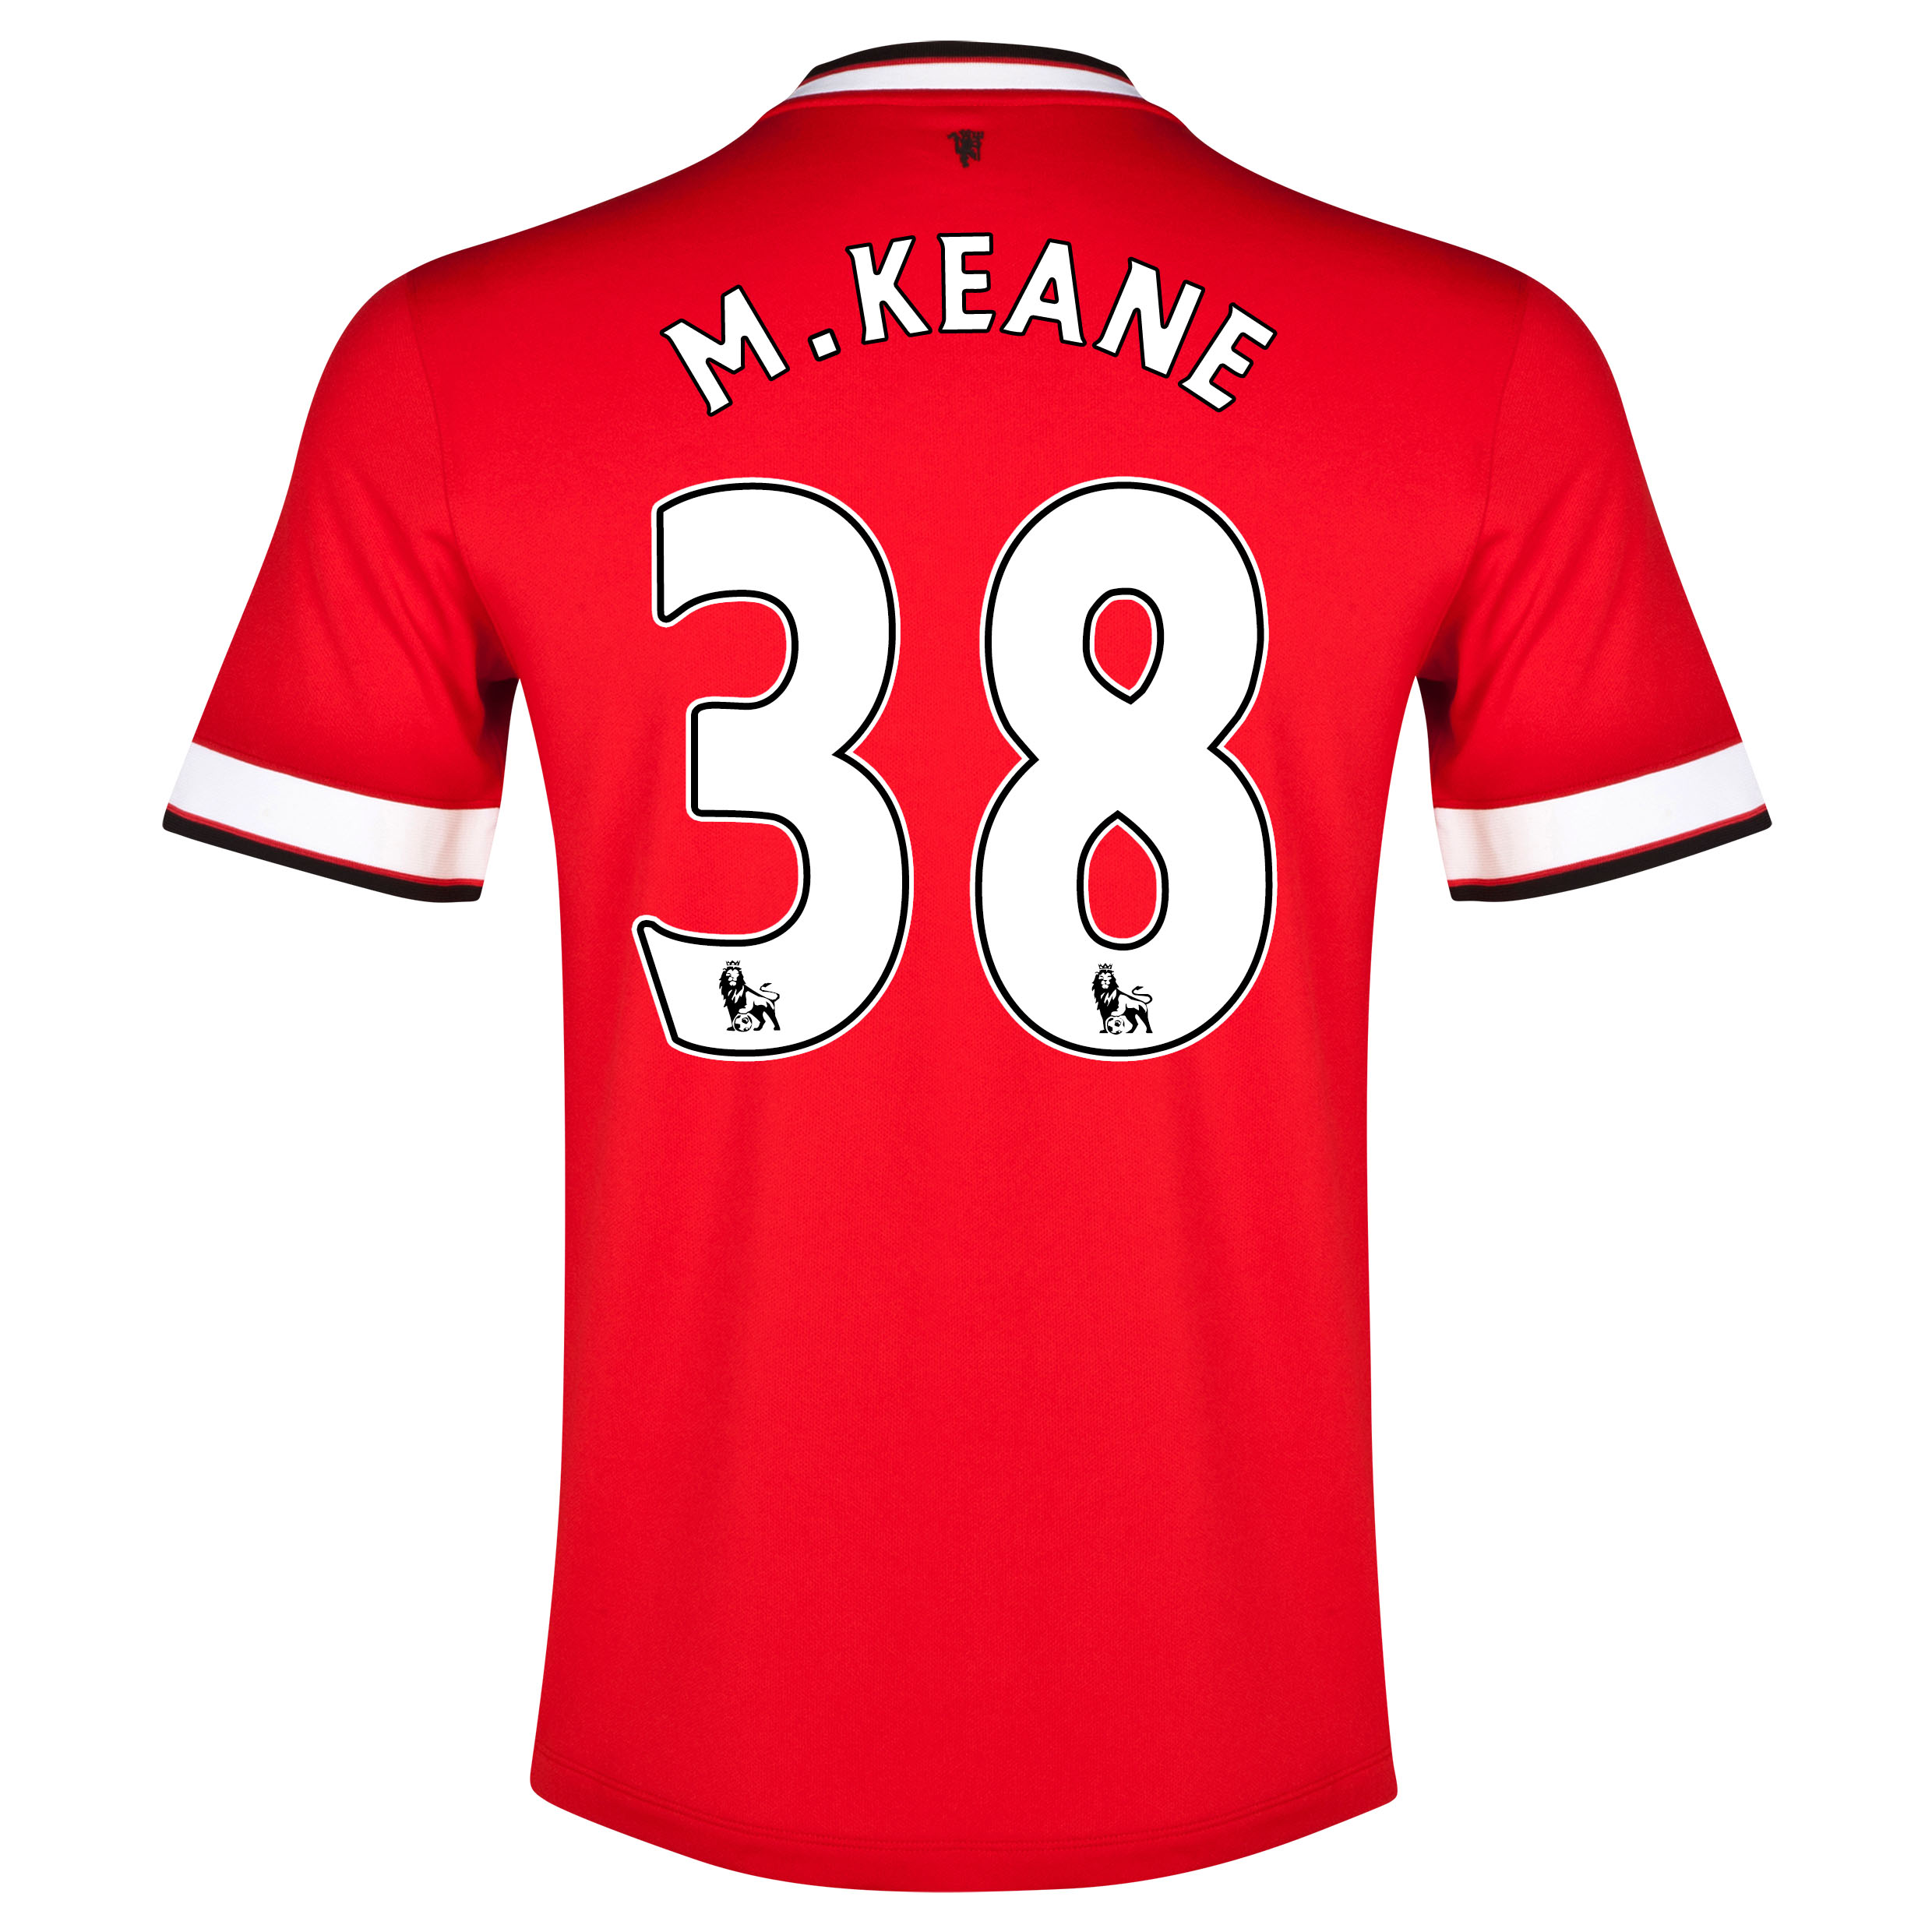 Manchester United Home Shirt 2014/15 with M.Keane 38 printing